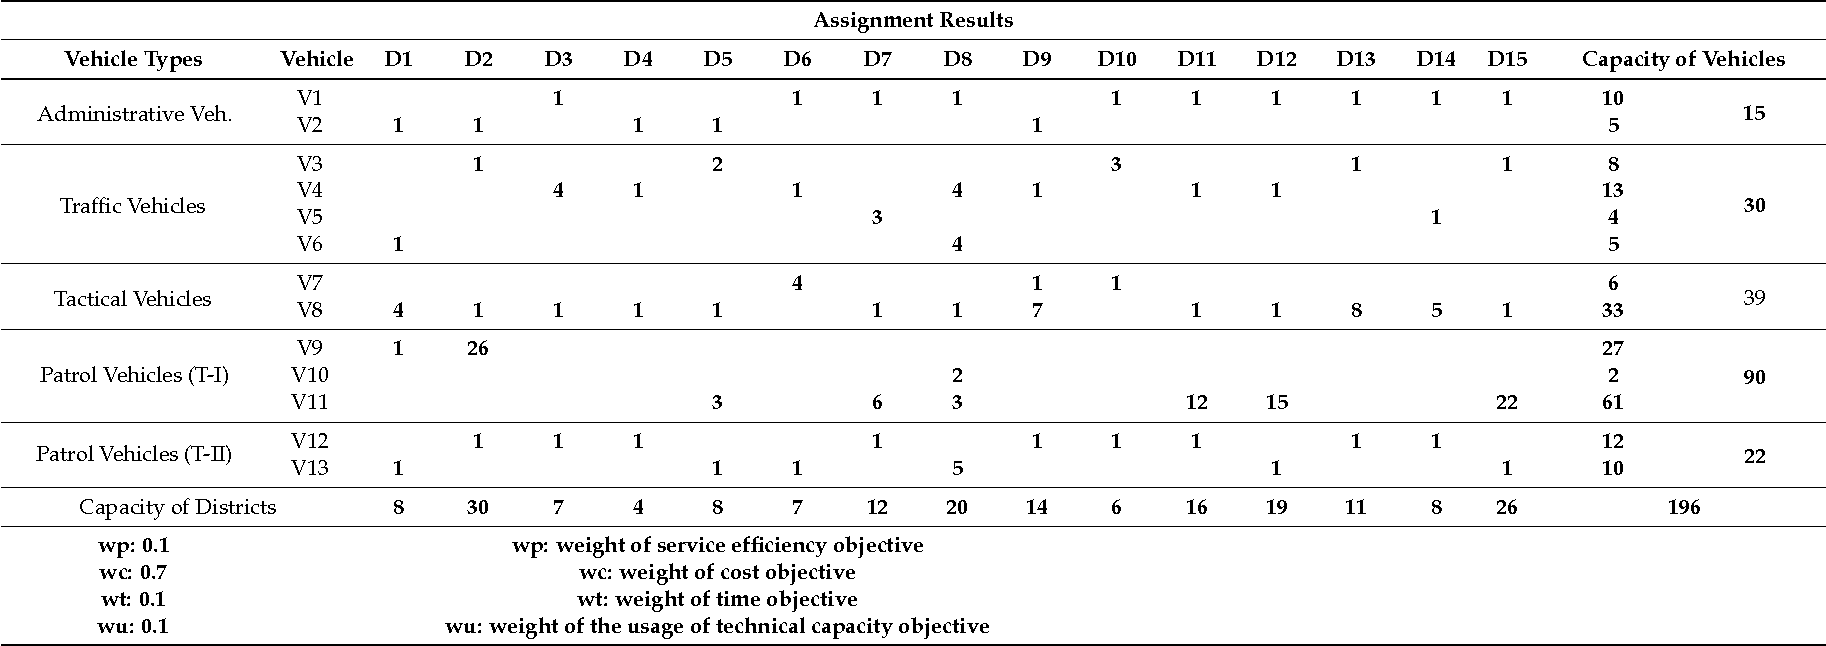 Table 6. Assignment results for Scenario I.